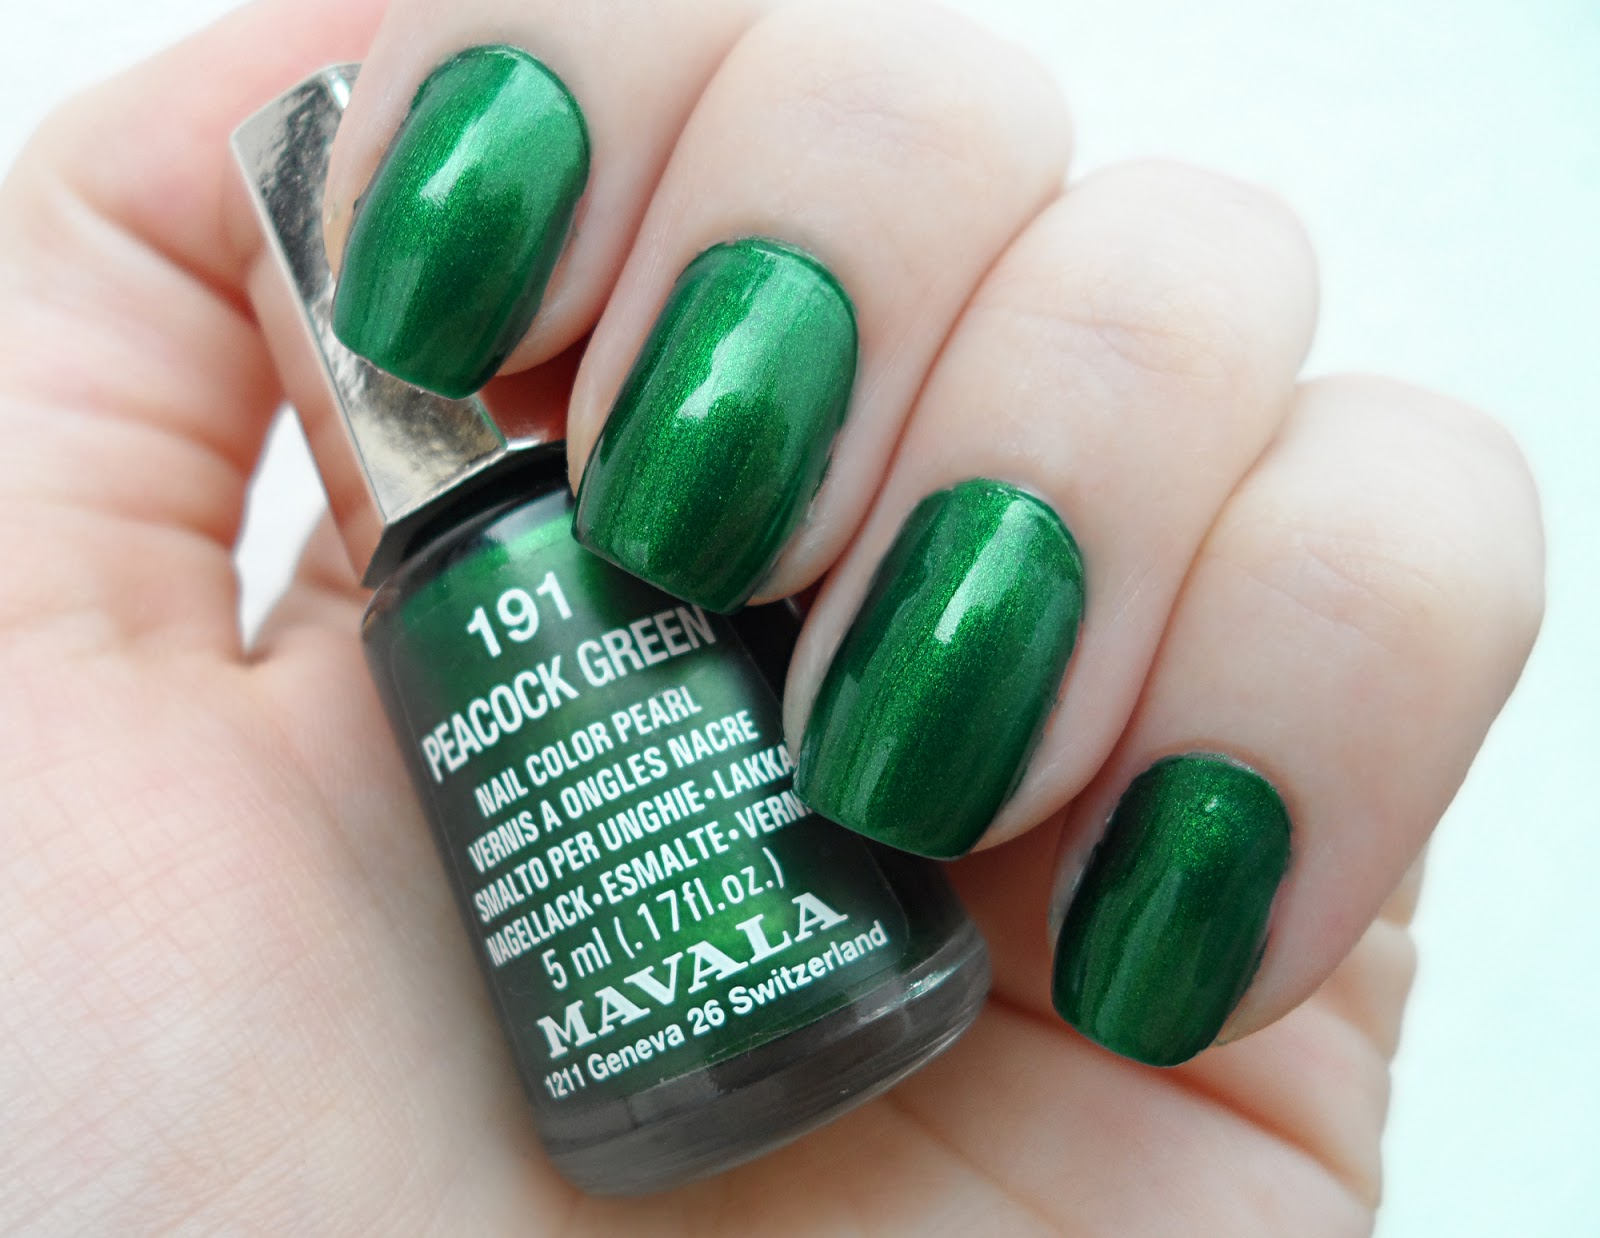 Christmas spring nail polish blogger review swatches mavala lacquer